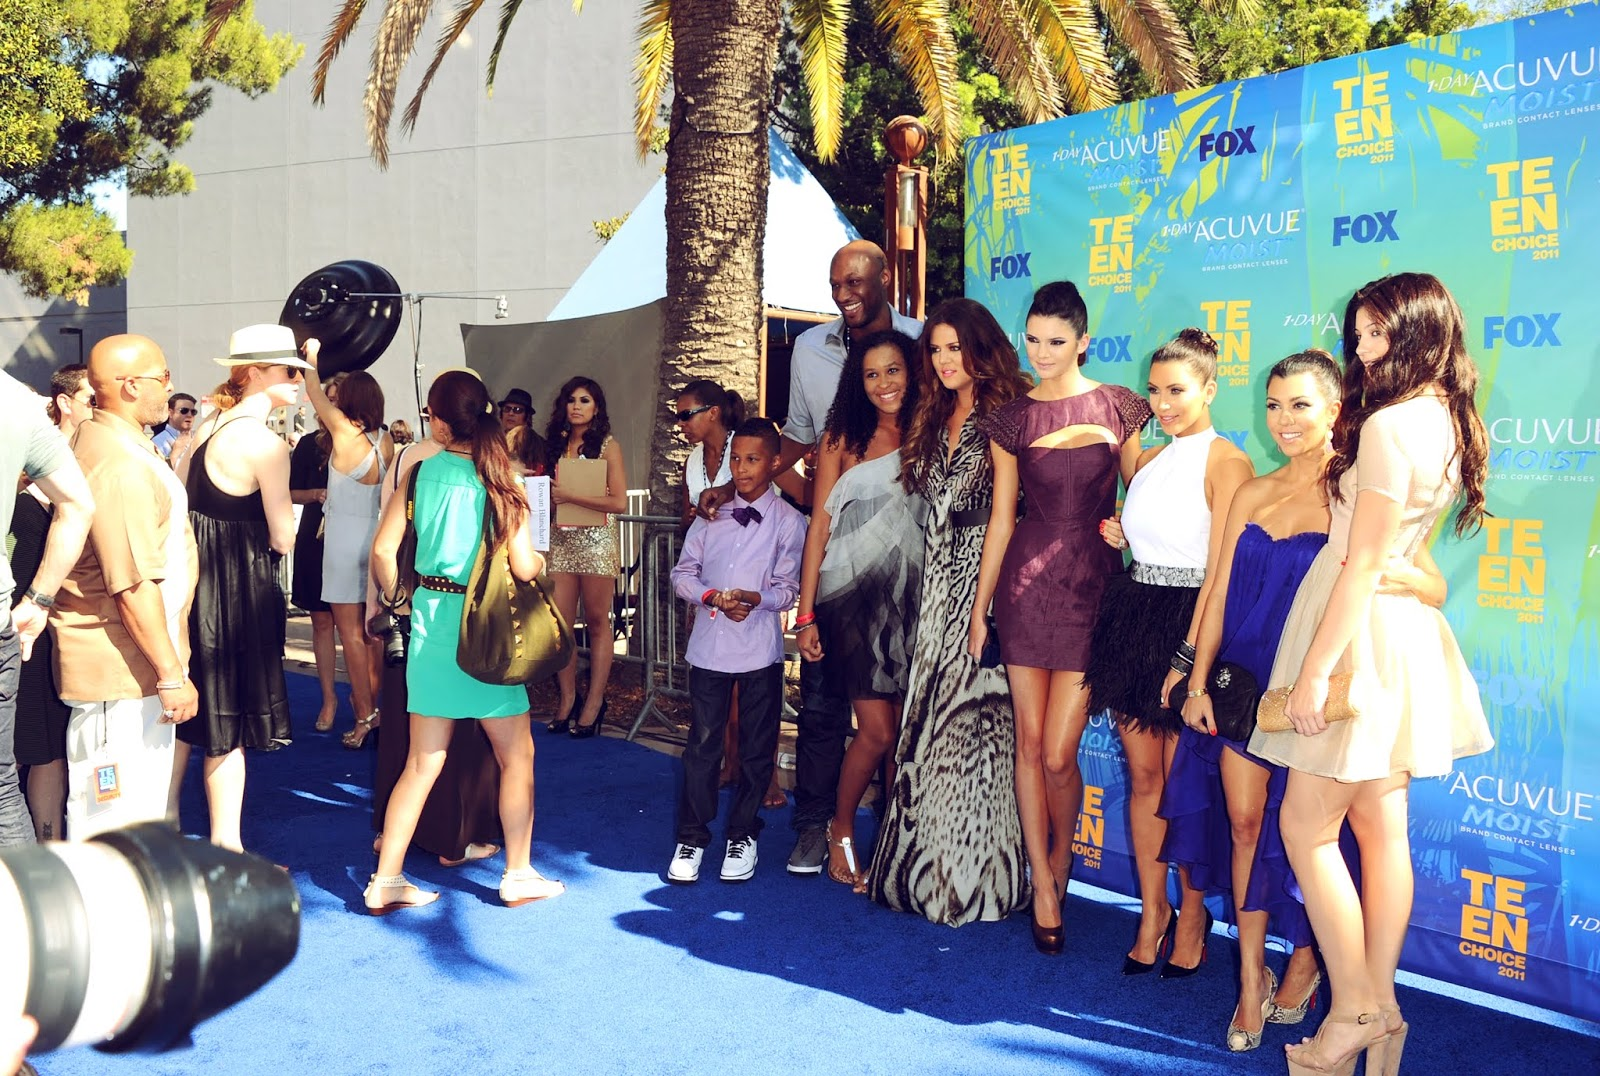 01 - Teen Choice Awards in August 11, 2011